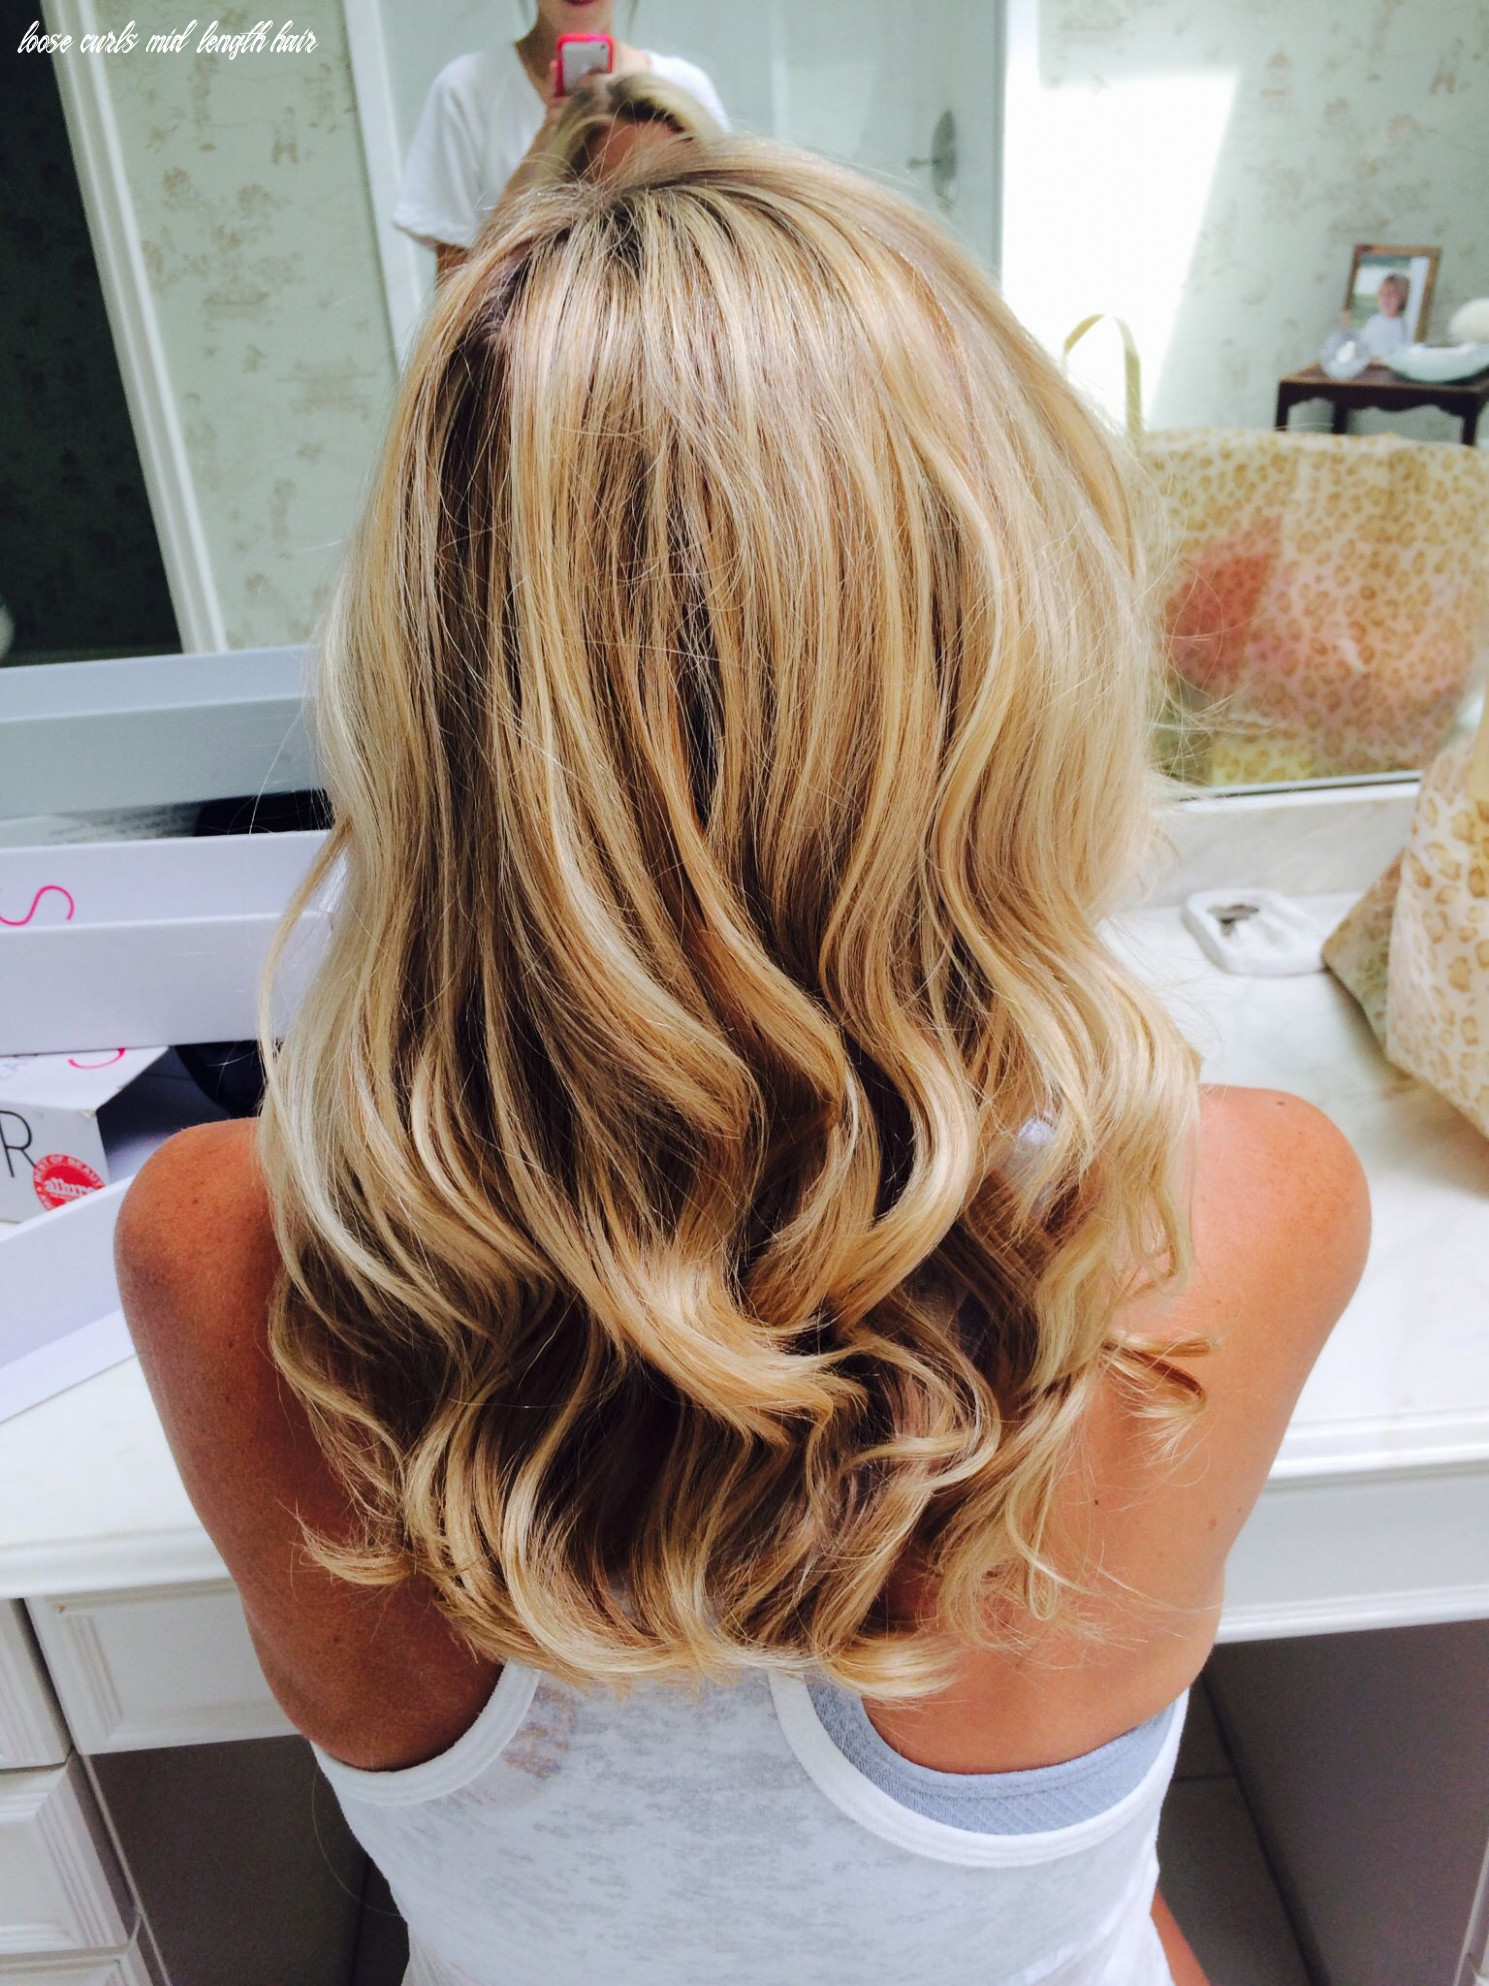 Pin by bailey seklar on beauty | curled hairstyles for medium hair loose curls mid length hair